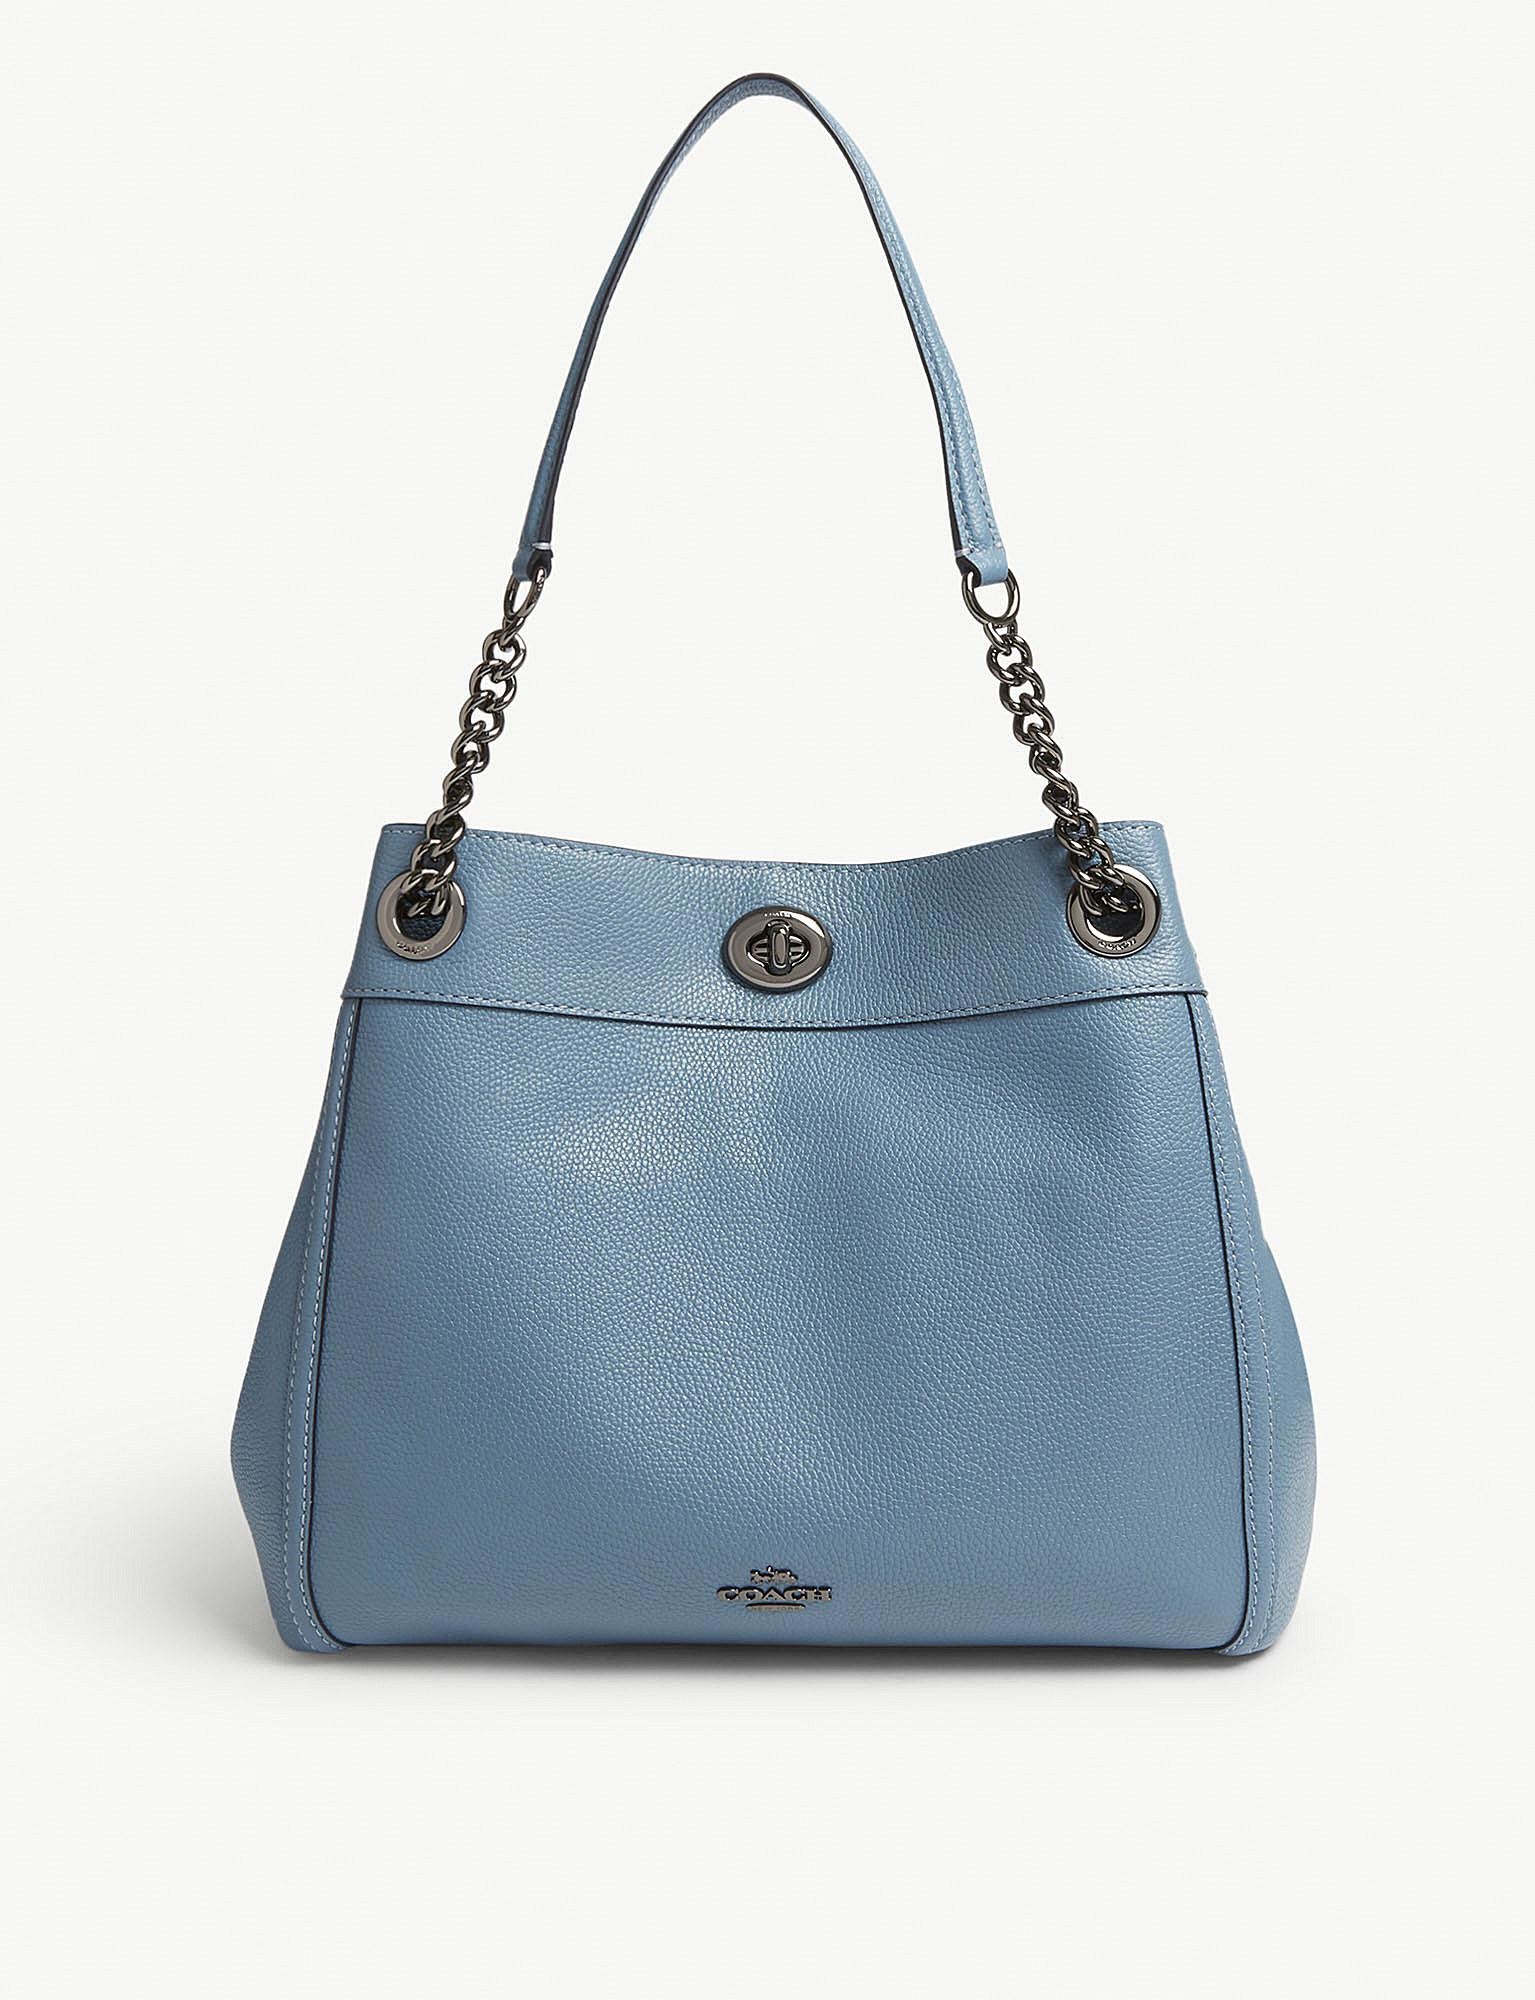 Denmark Coach Ladies Leather Bags Aac40 F5d86 Swagger Wristlet In Pebble Watermelon Shop Womens Dark Chambray Blue Edie Shoulder Bag 67d50 4e413